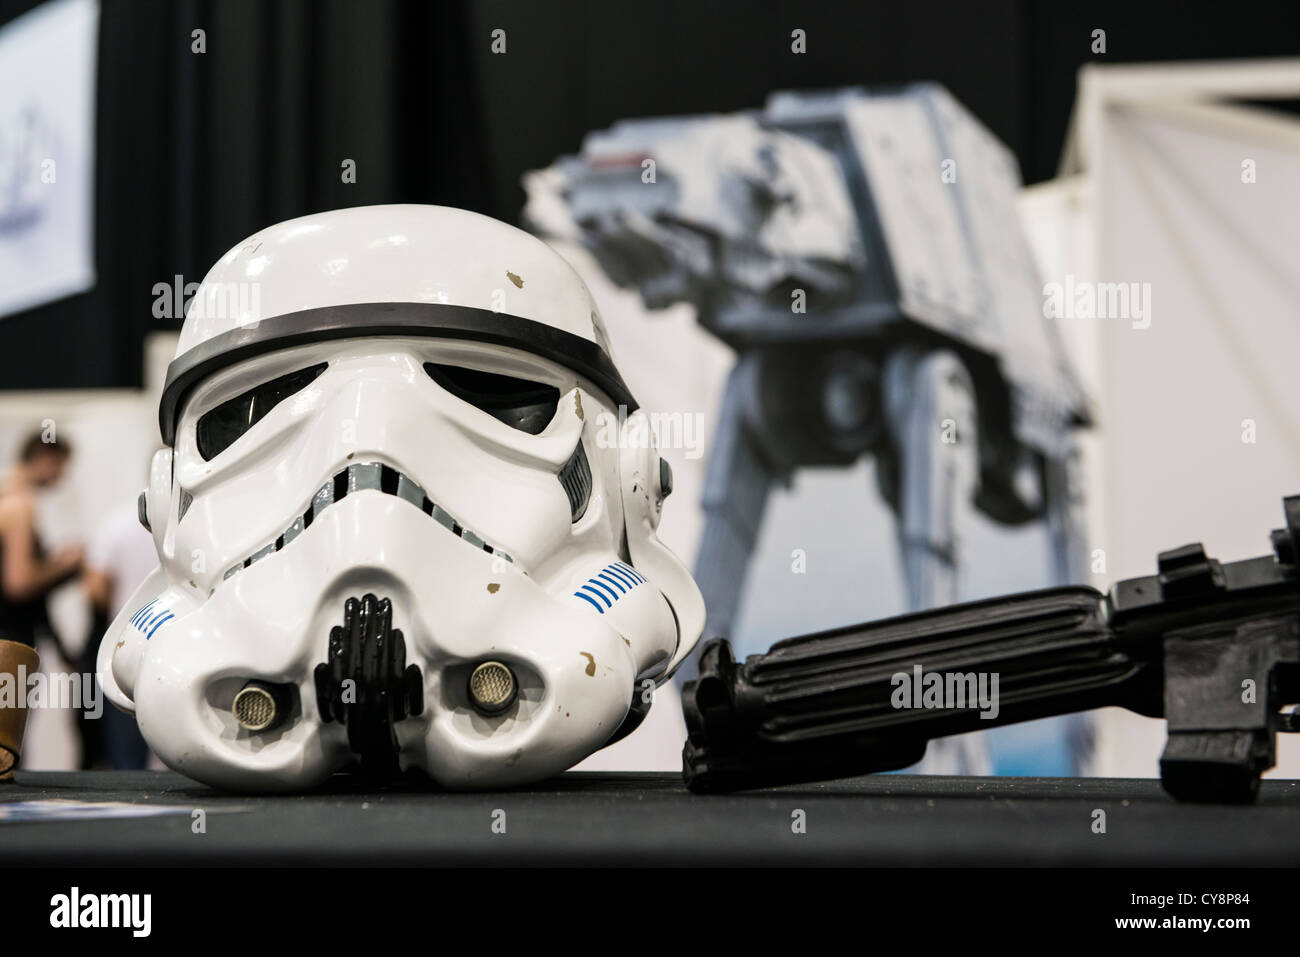 LONDON, UK - OCTOBER 28: Display of replicas of Star Wars' Storm Trooper helmet on display at the London Comicon - Stock Image